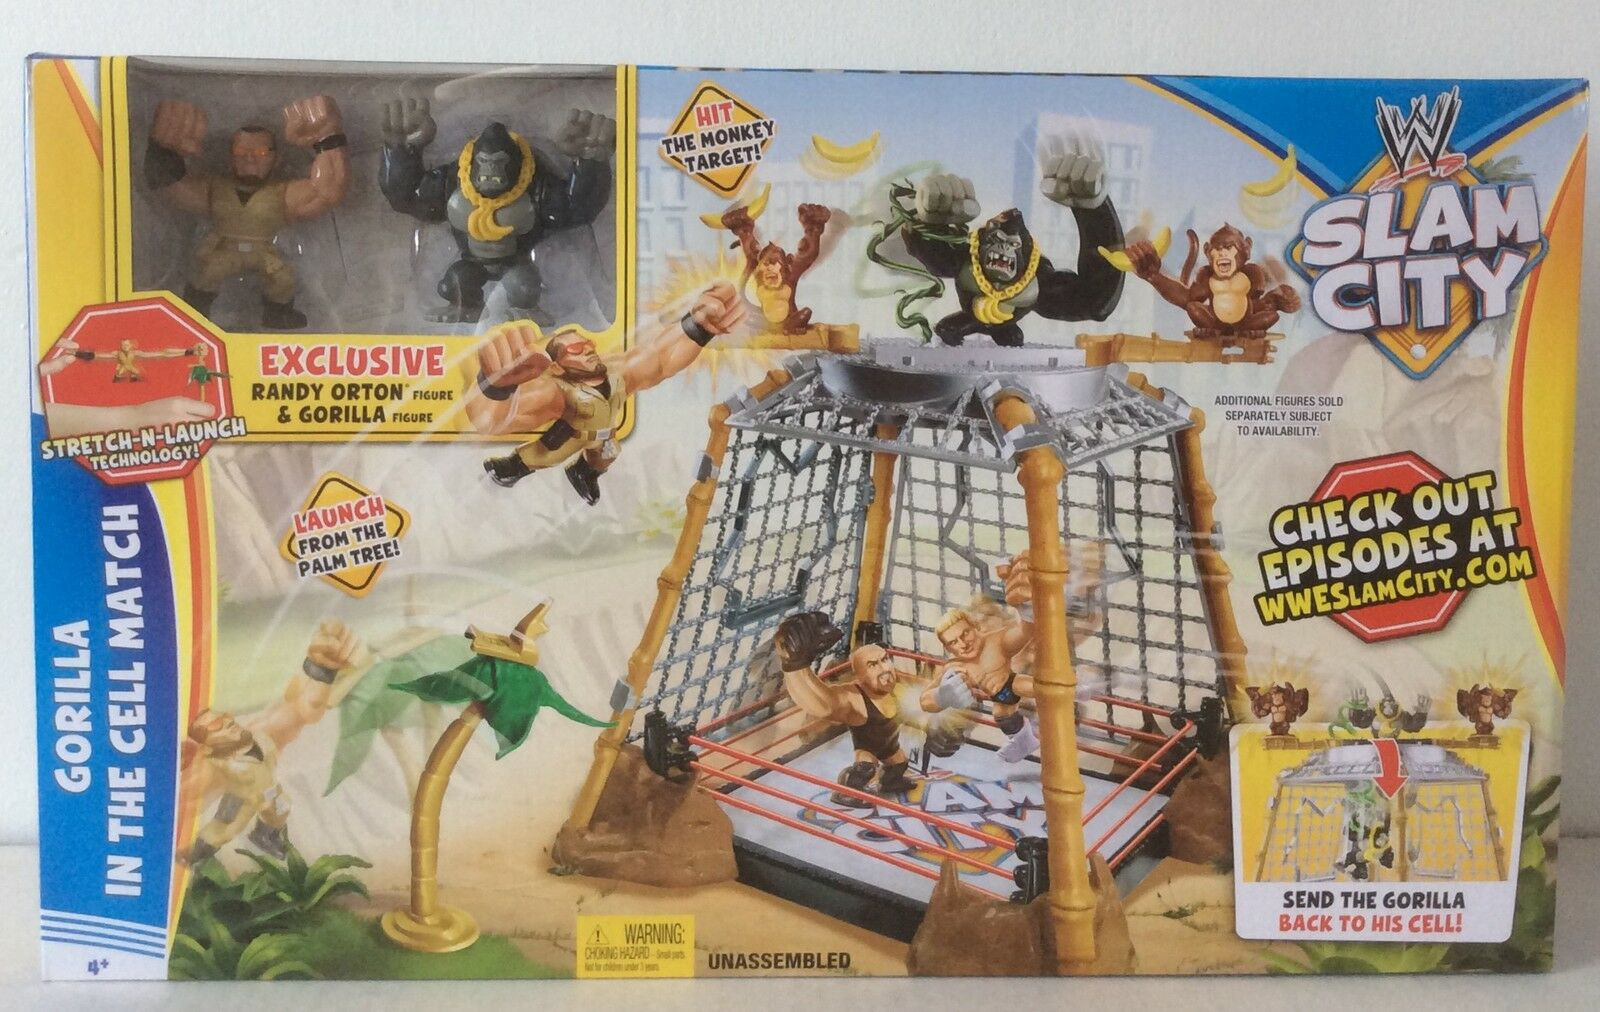 WWE SLAM CITY GORILLA IN THE CELL MATCH RANDY ORTON & GORILLA FIGURES